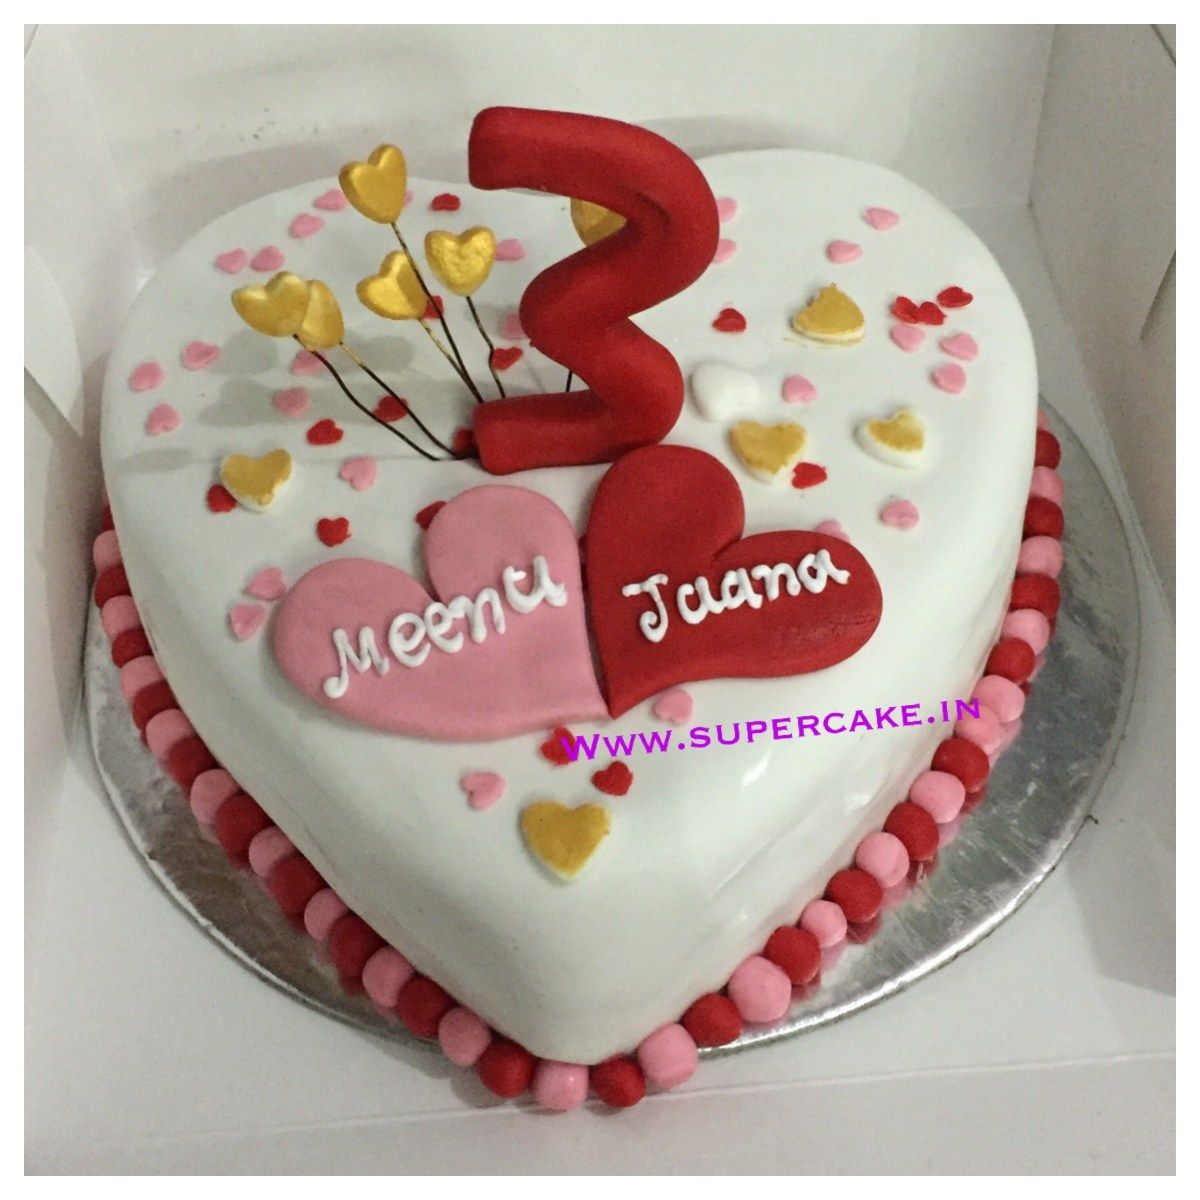 20 Excellent Picture Of Order Birthday Cake Online Delivery In Noida Midnight Store